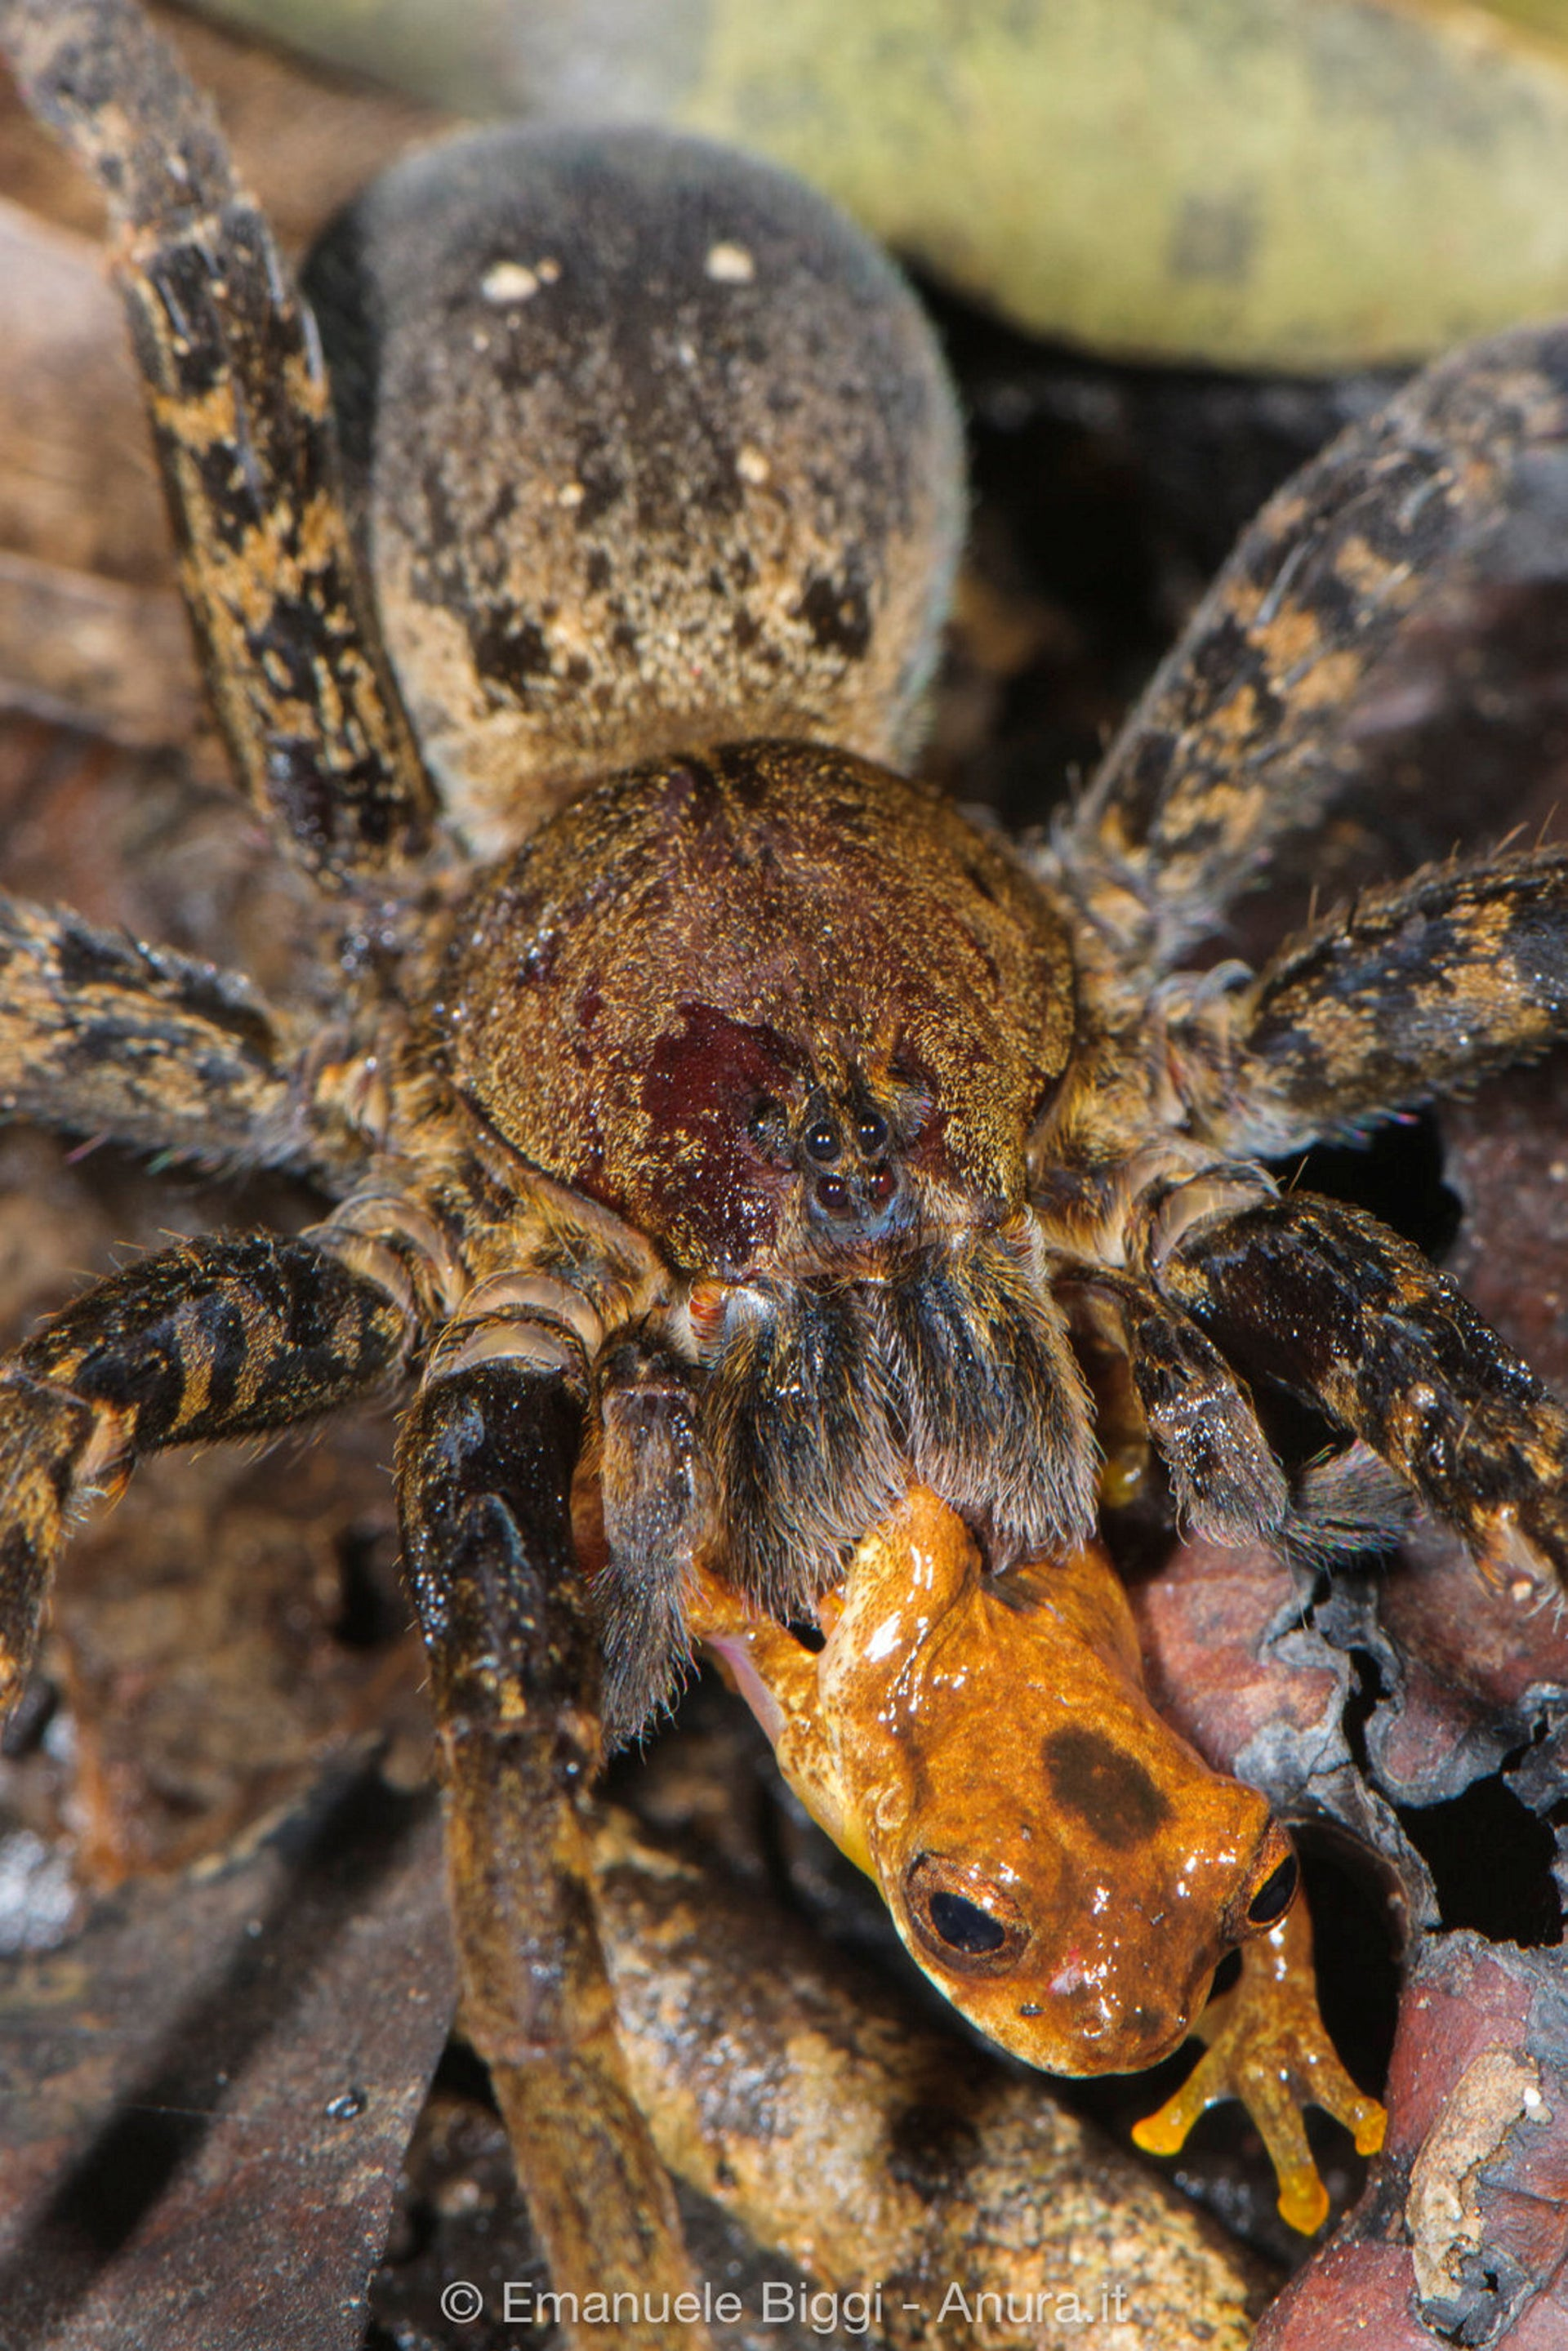 A wandering spider (genus Ancylometes) in the lowland Amazon rainforest preying on a tree frog (Dendropsophus leali).